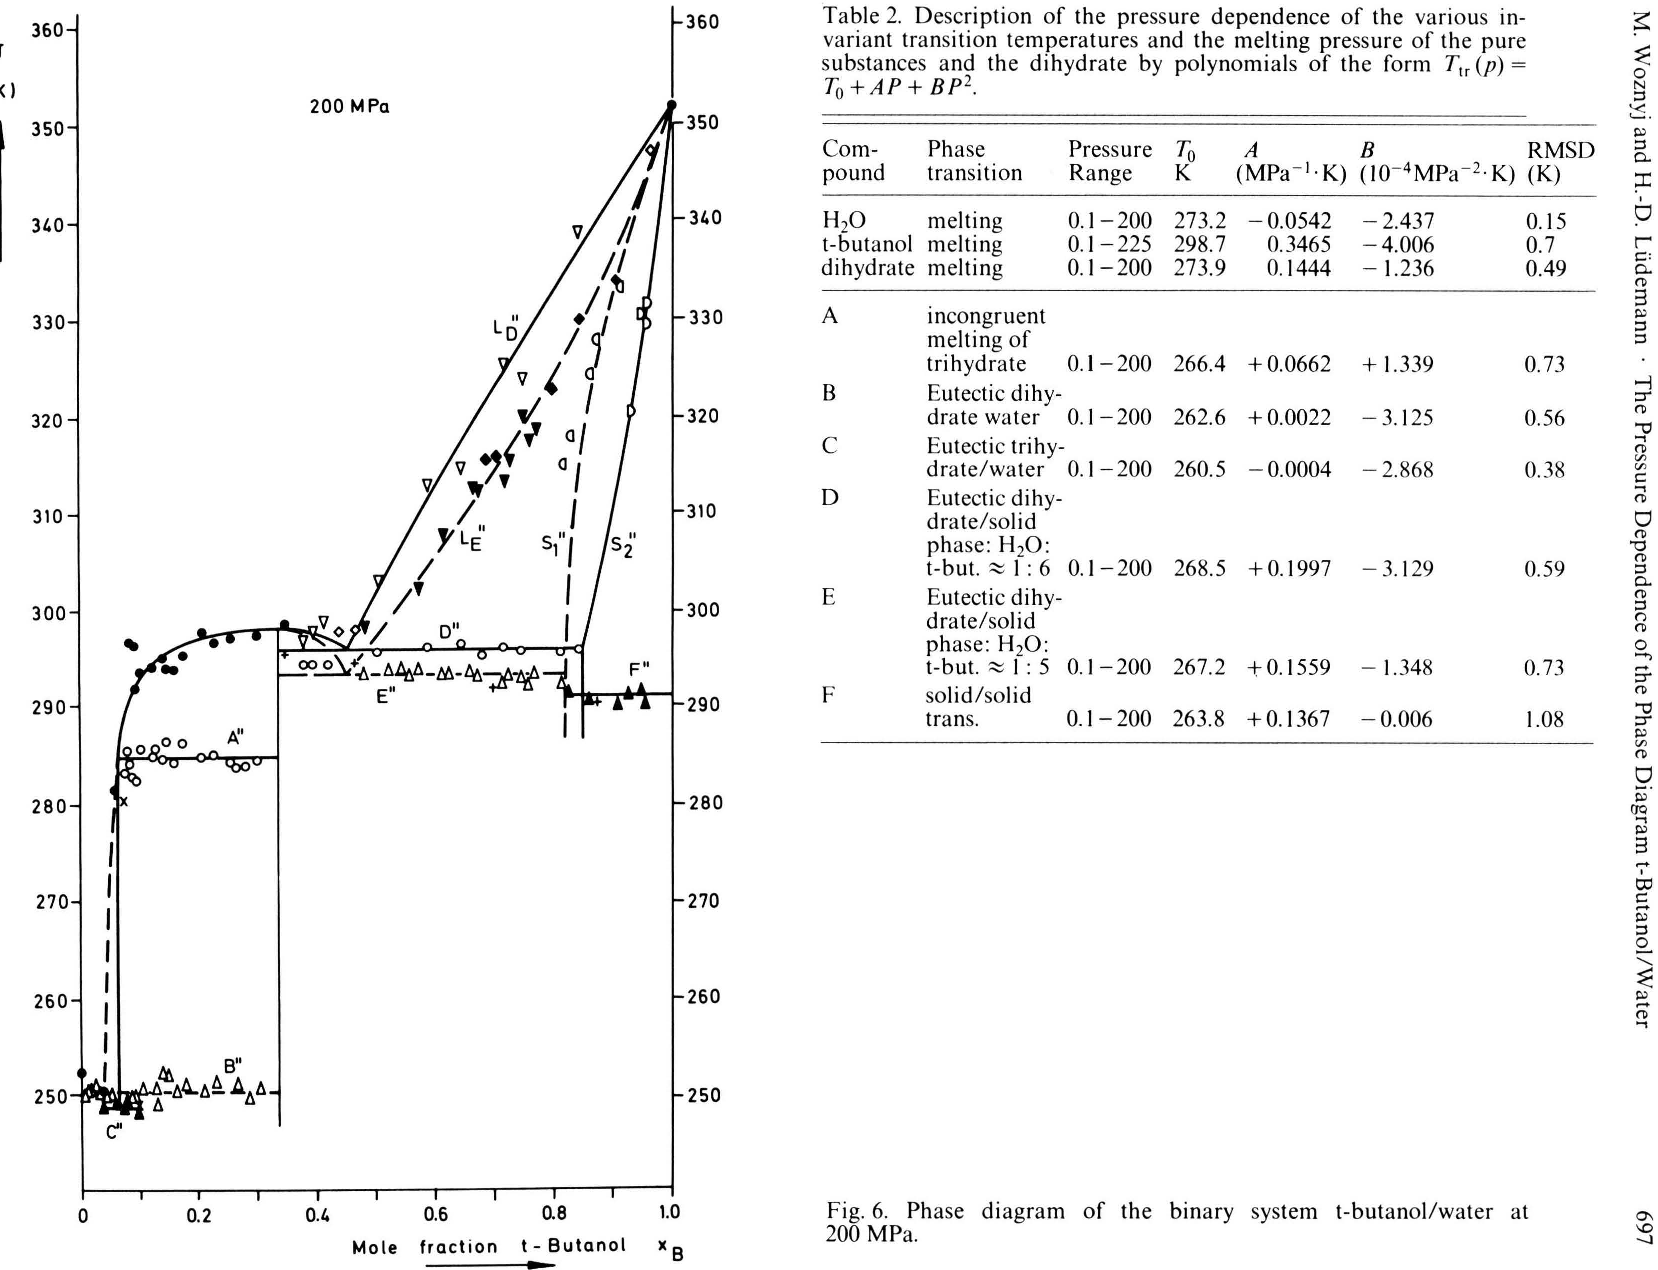 hight resolution of figure 6 from the pressure dependence of the phase diagram t butanol phase diagram of t butanol phase diagram of t butanol